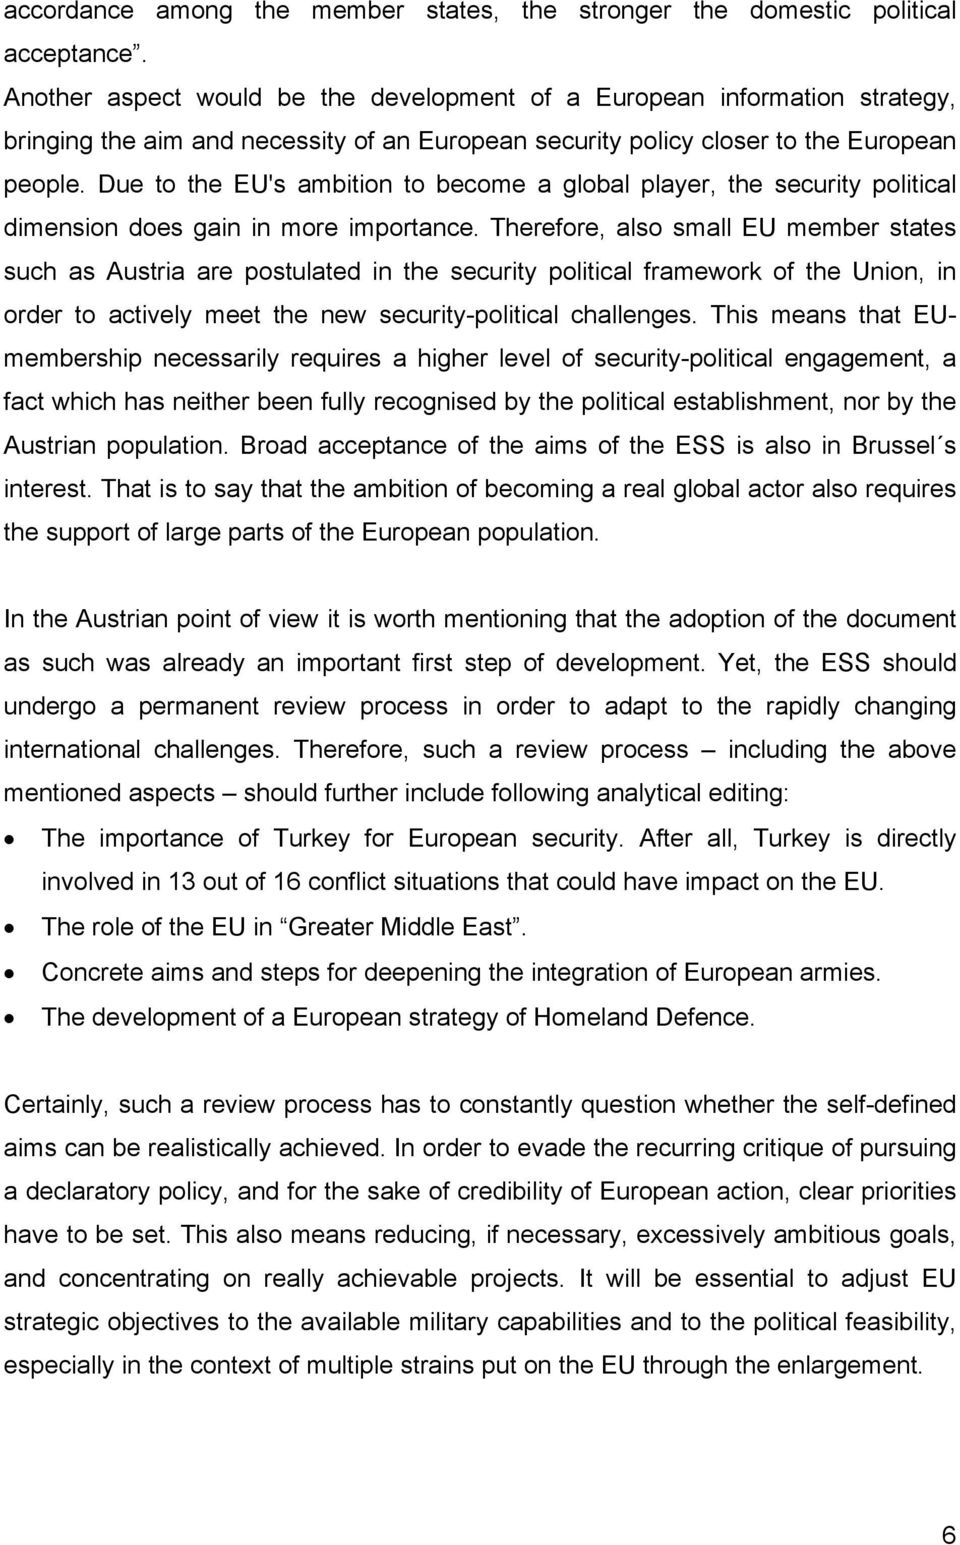 Due to the EU's ambition to become a global player, the security political dimension does gain in more importance.